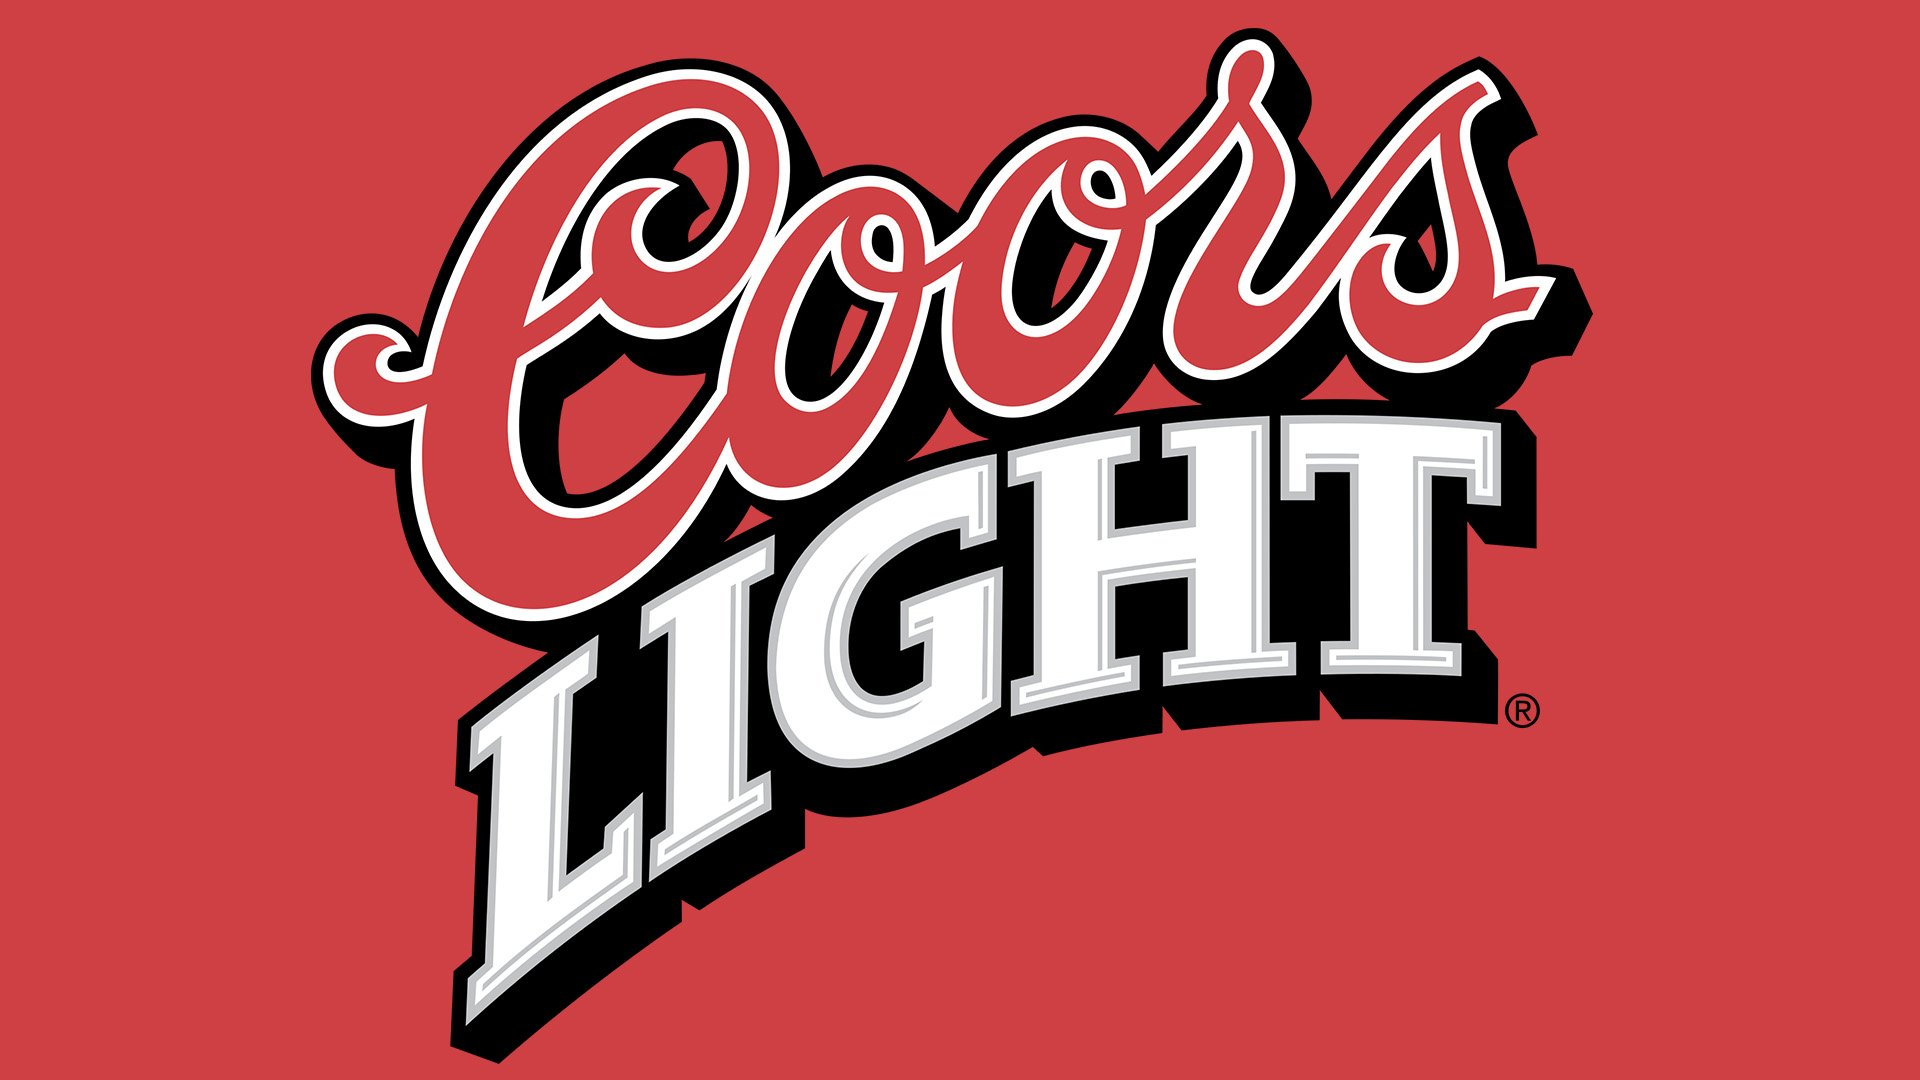 coors light logo and symbol  meaning  history  png